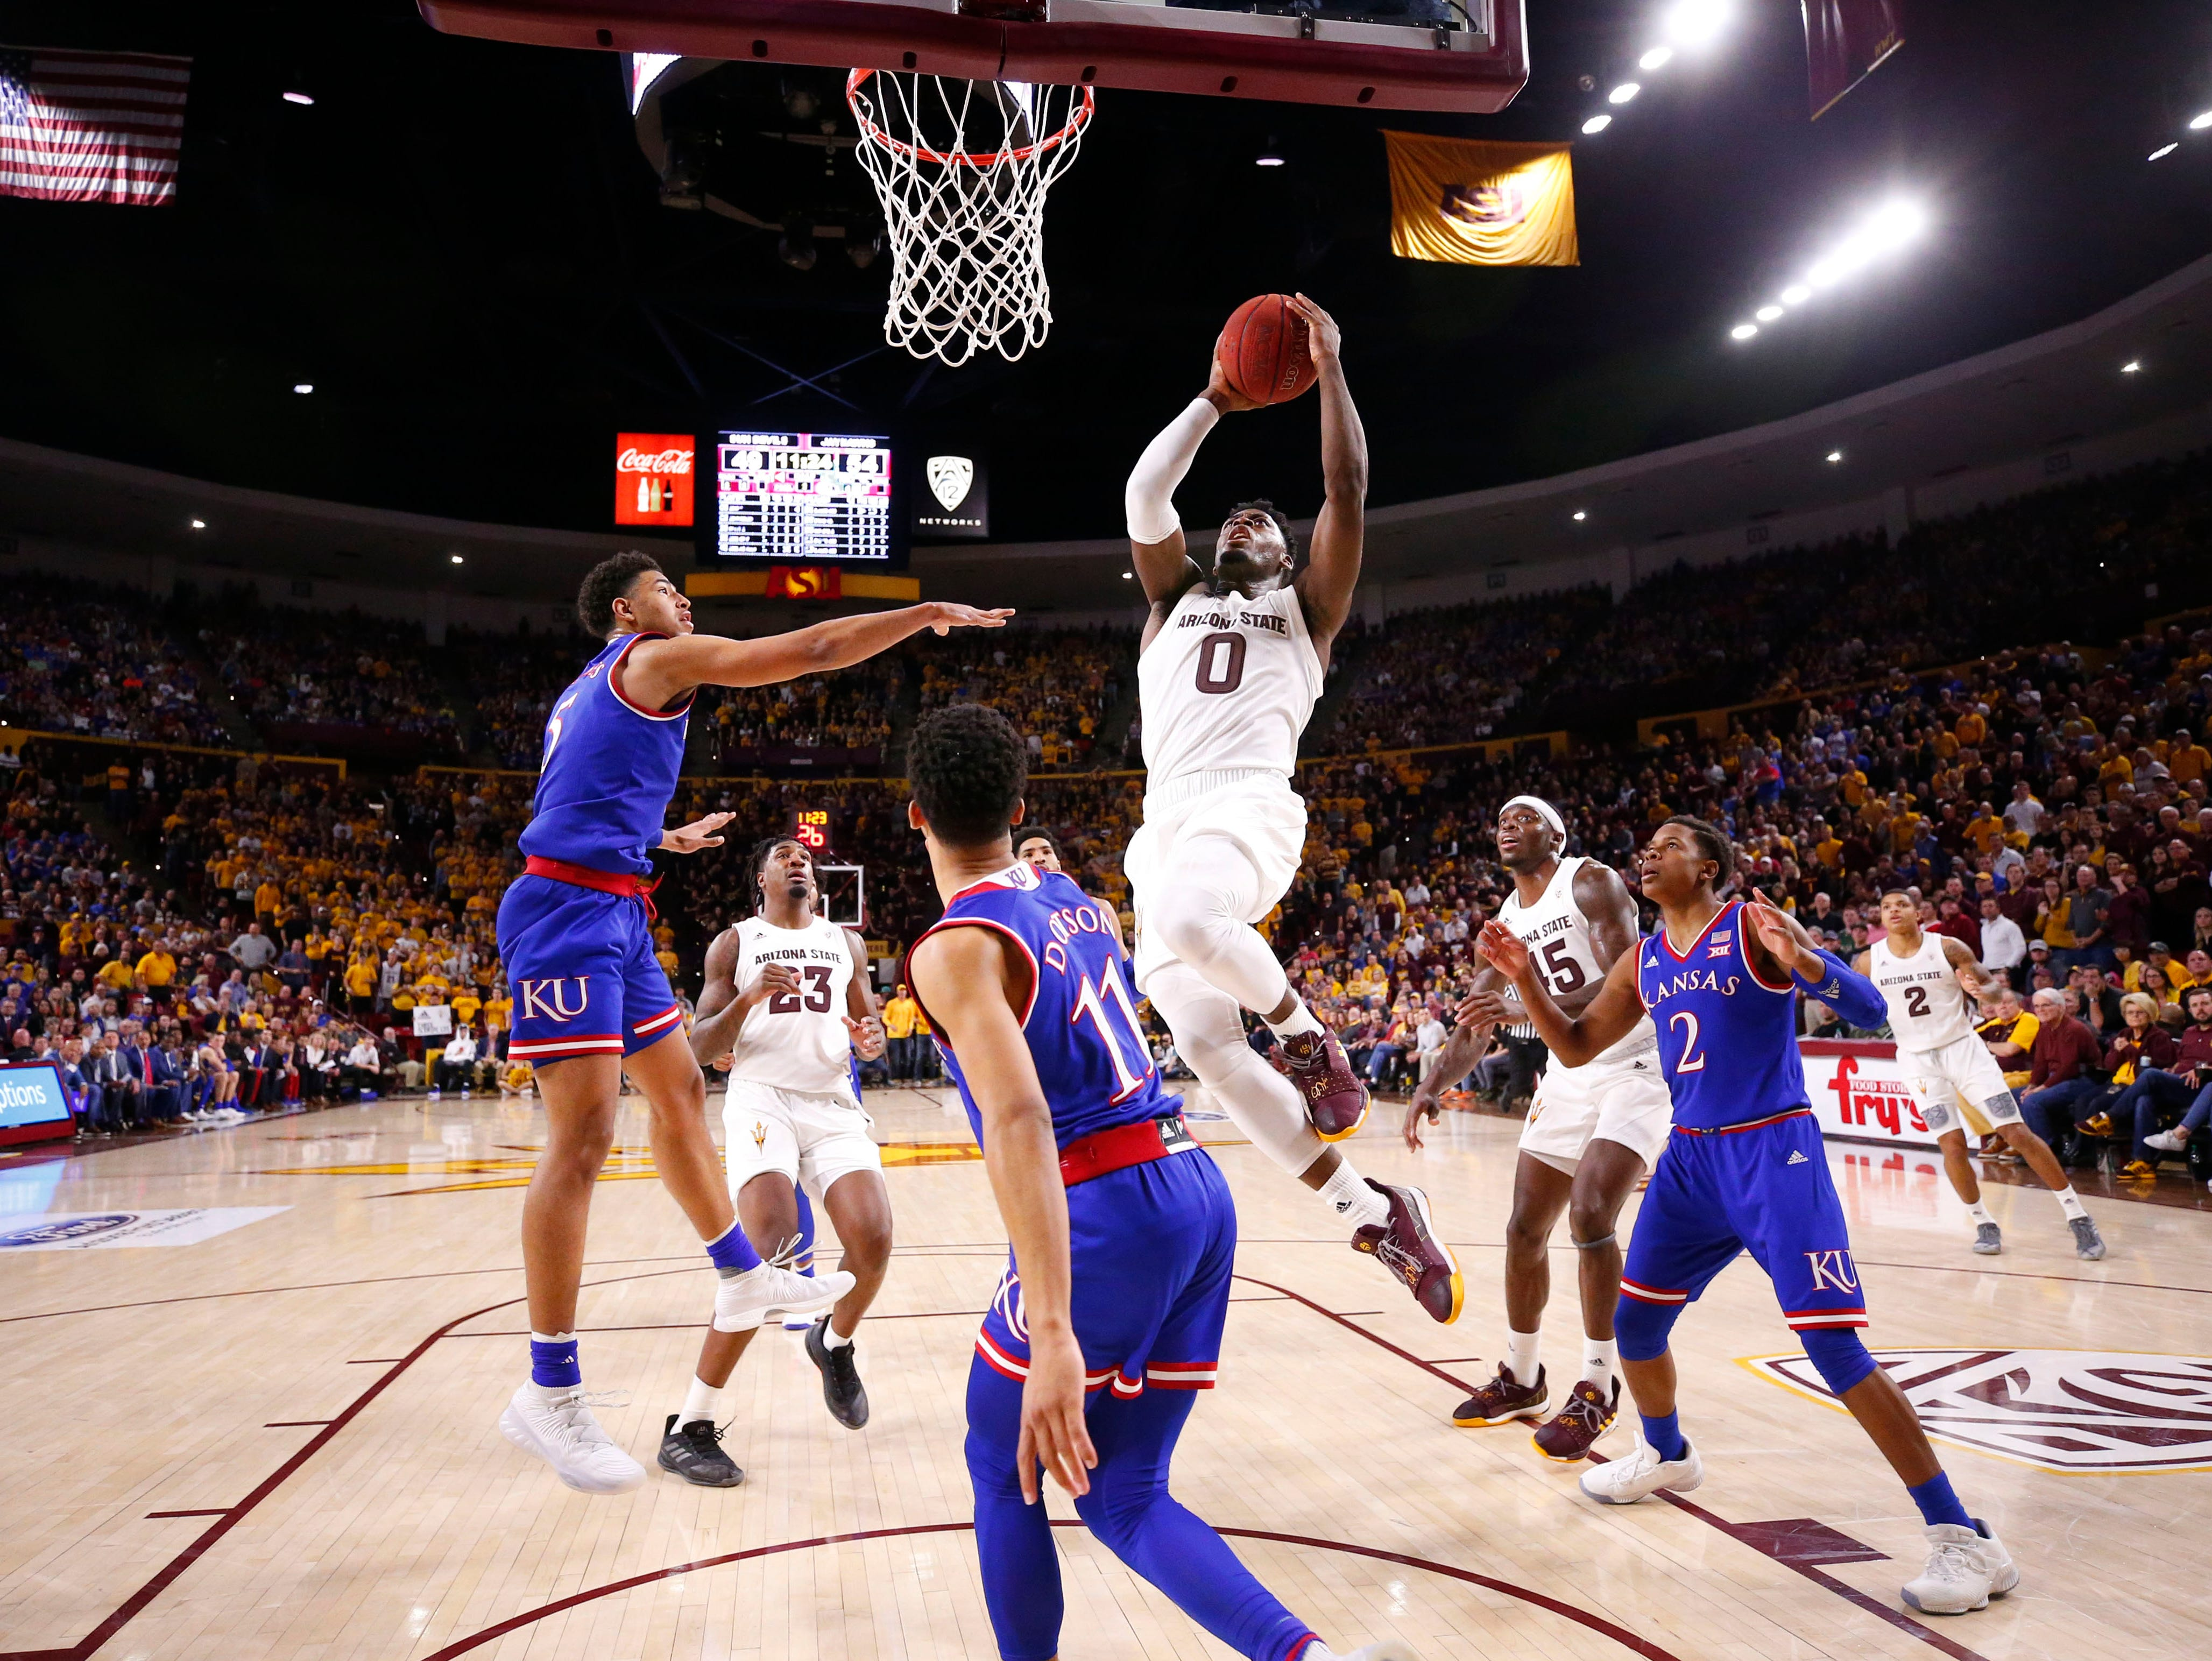 Arizona State guard Luguentz Dort dives to the basket against Kansas in the second half on Dec. 22 at Wells Fargo Arena.